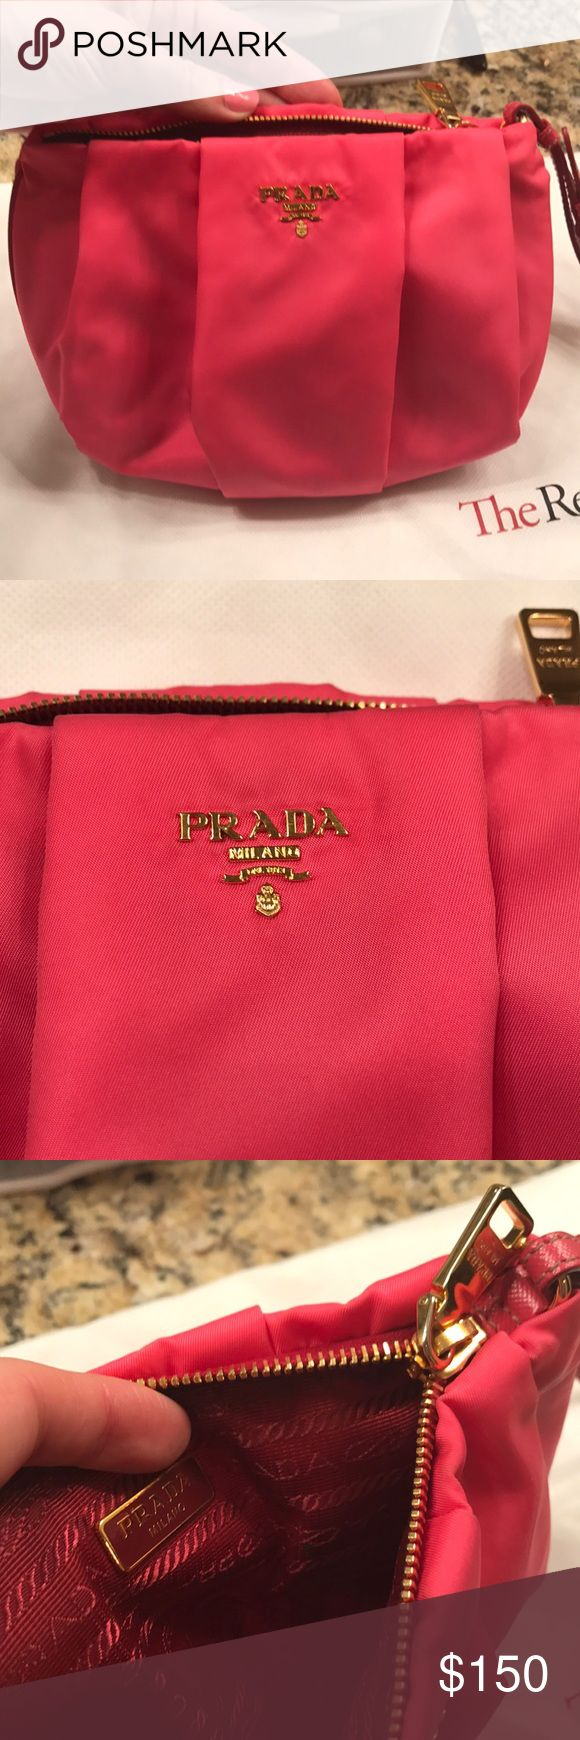 Prada Tessuto Nylon Wristlet Peonia bow Wristlet. Zipper closure. Saffiano zipper piping and wrist strap Prada Bags Clutches & Wristlets